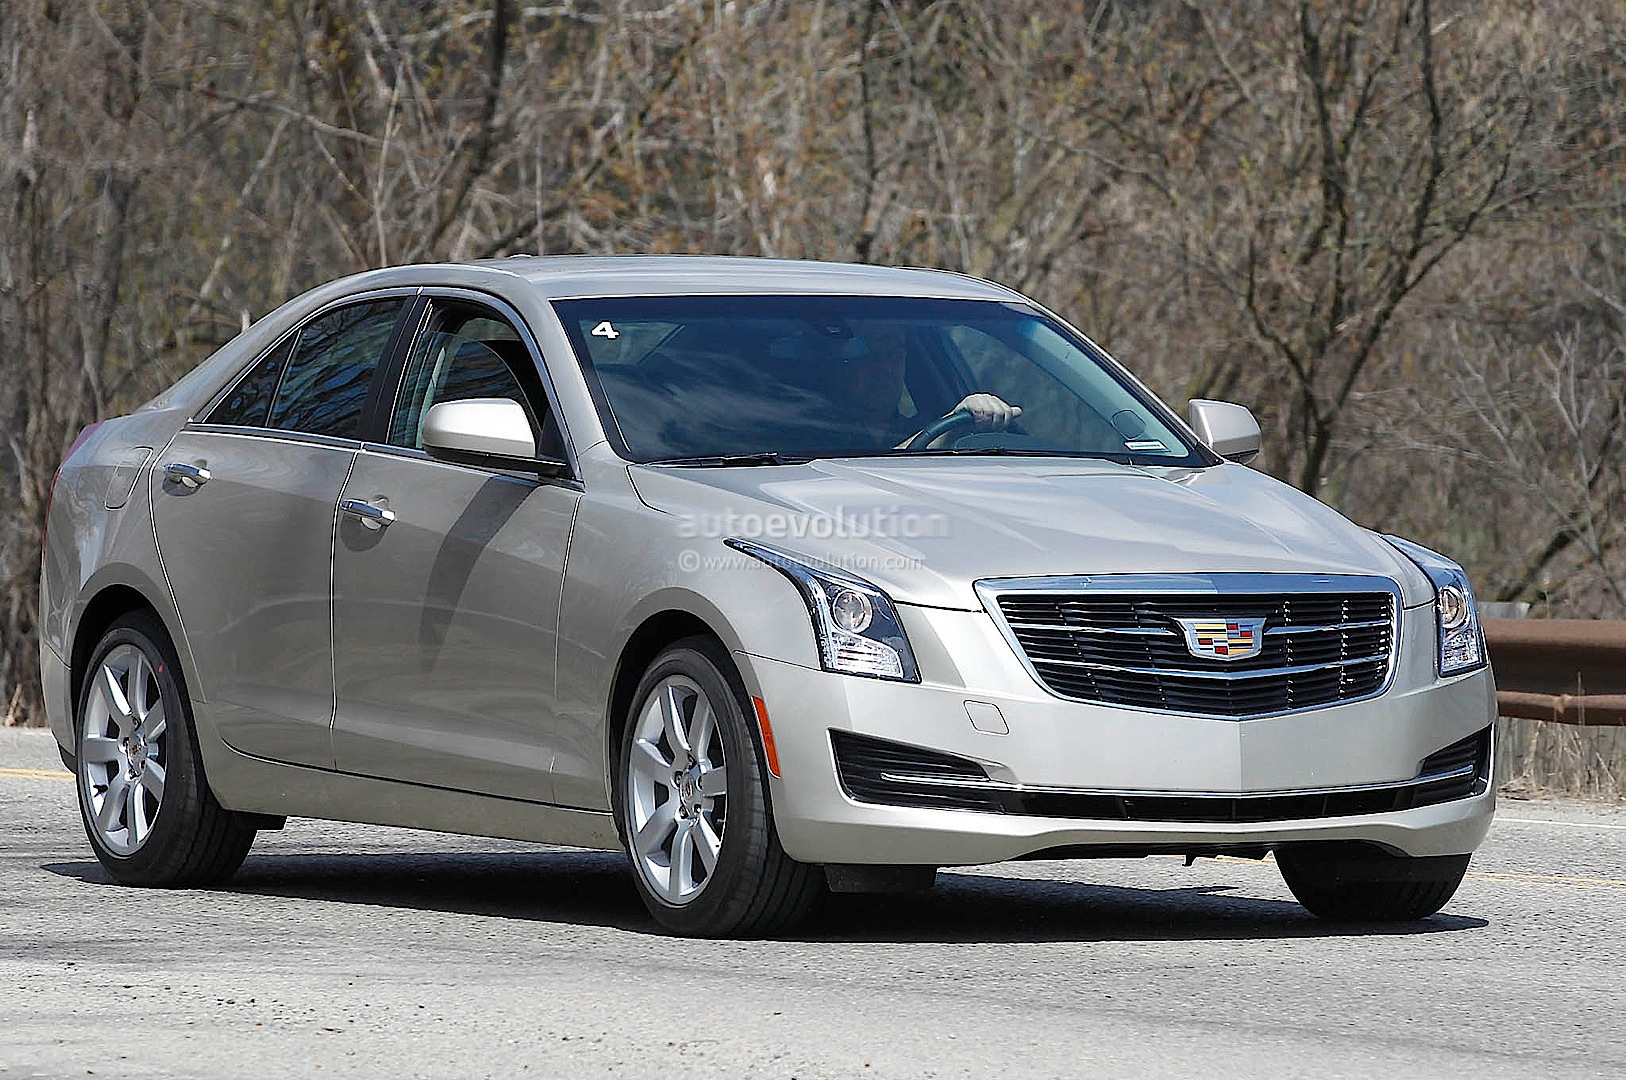 Spyshots: 2015 Cadillac ATS Spied Up Close - autoevolution